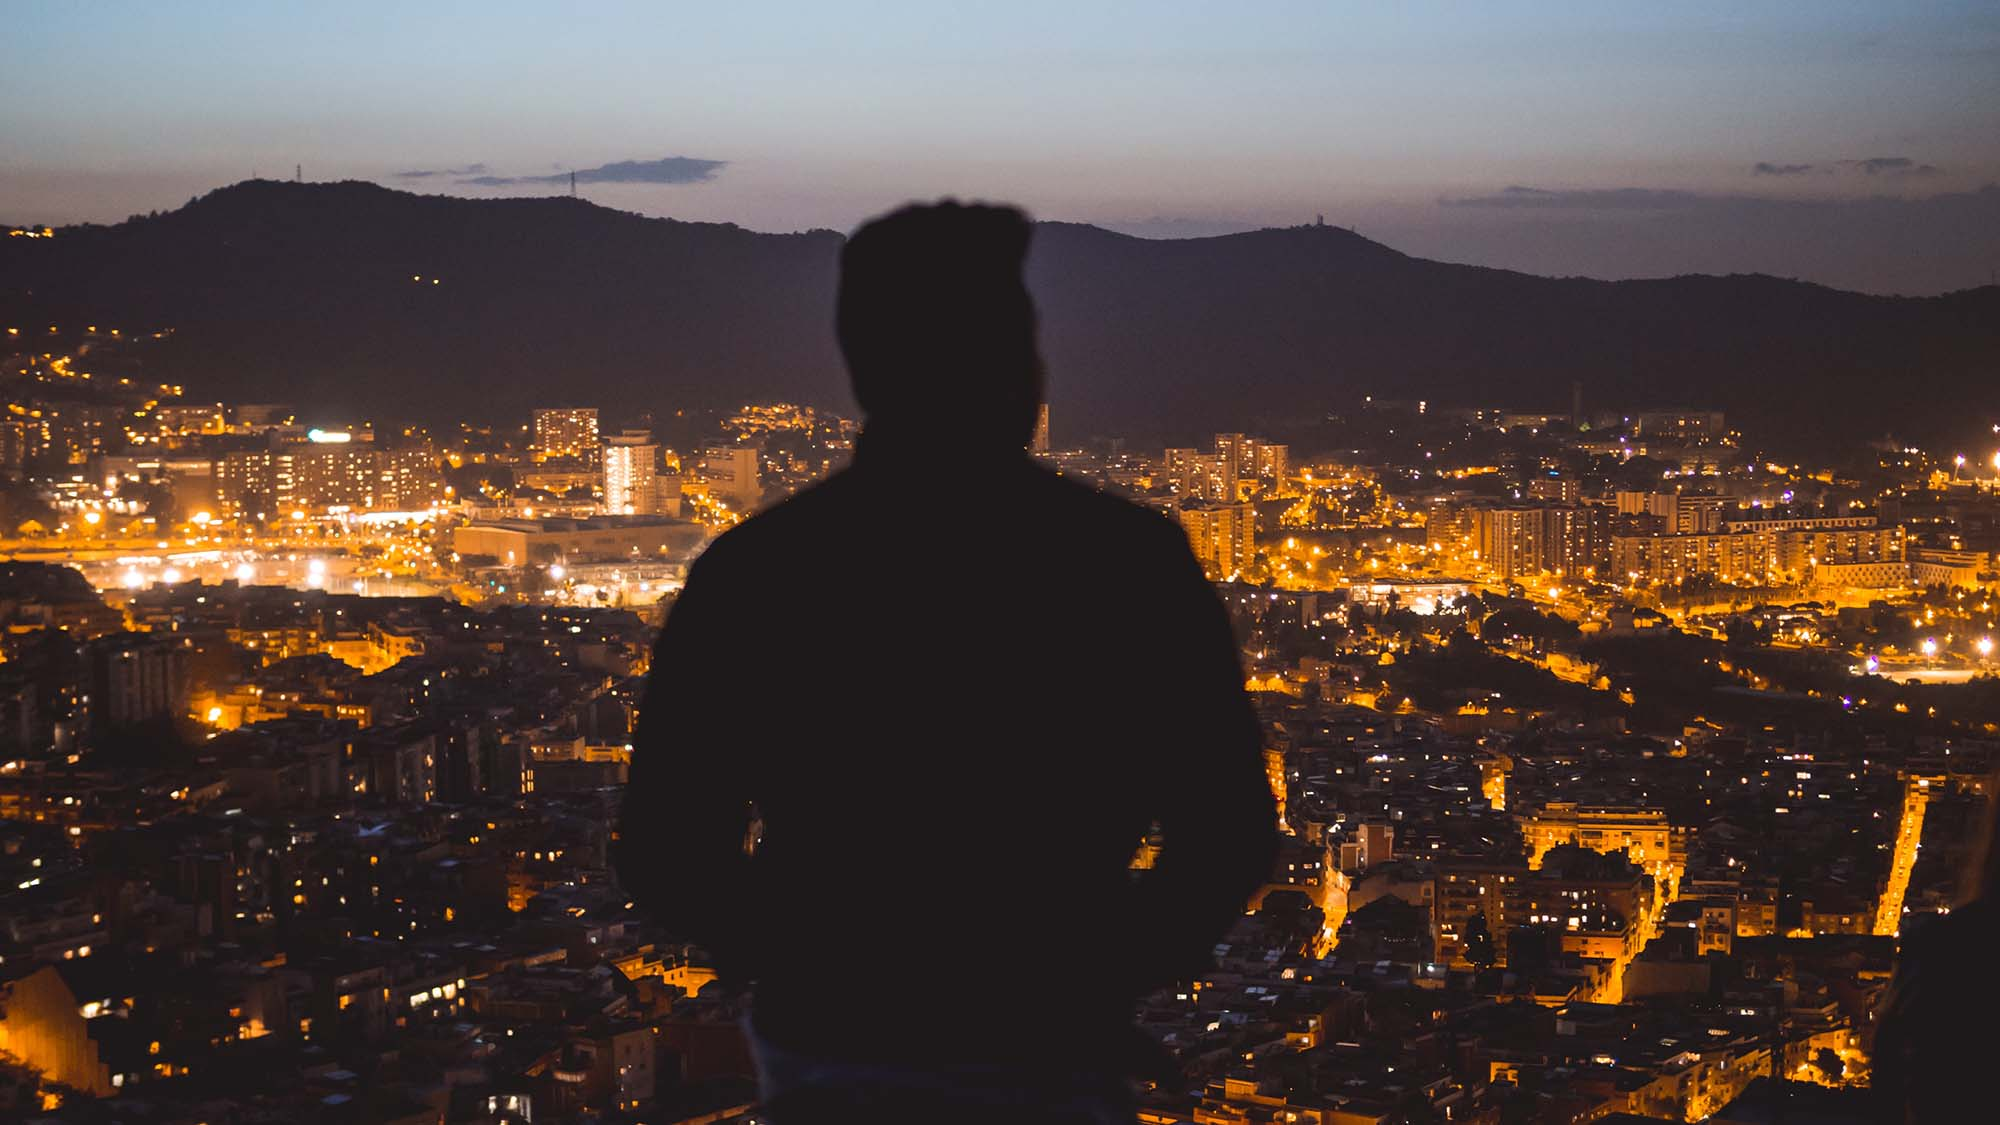 Researchers at ISGlobal have studied the effects of night-time exposure to blue light. Photo by Wyron A via Unsplash.